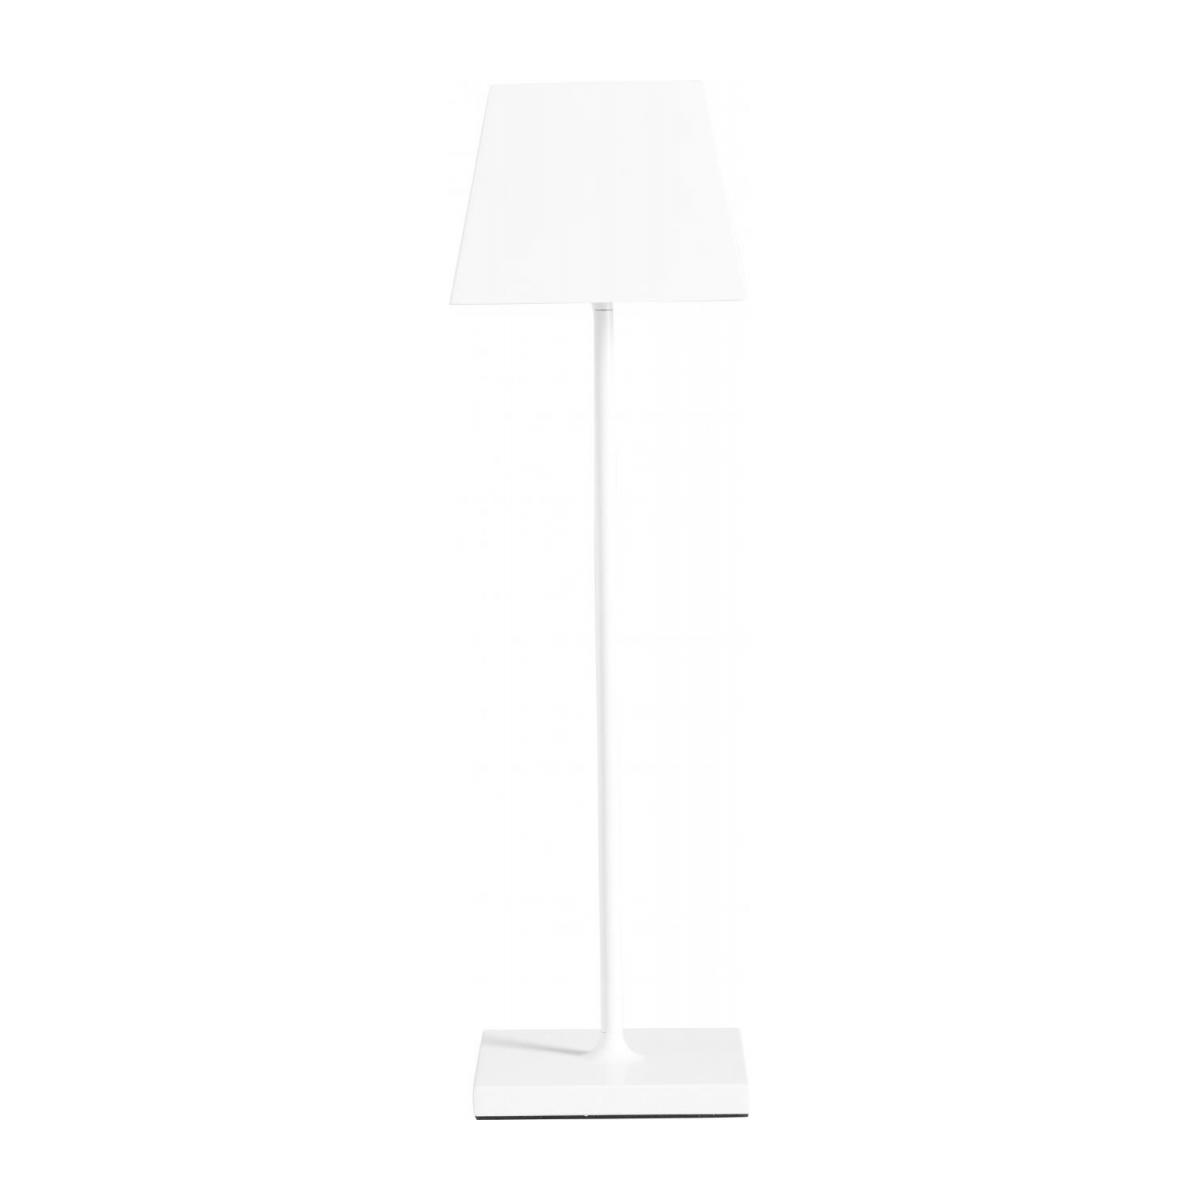 Lampe de table nomade à LED IP54 en aluminium - Blanc n°3